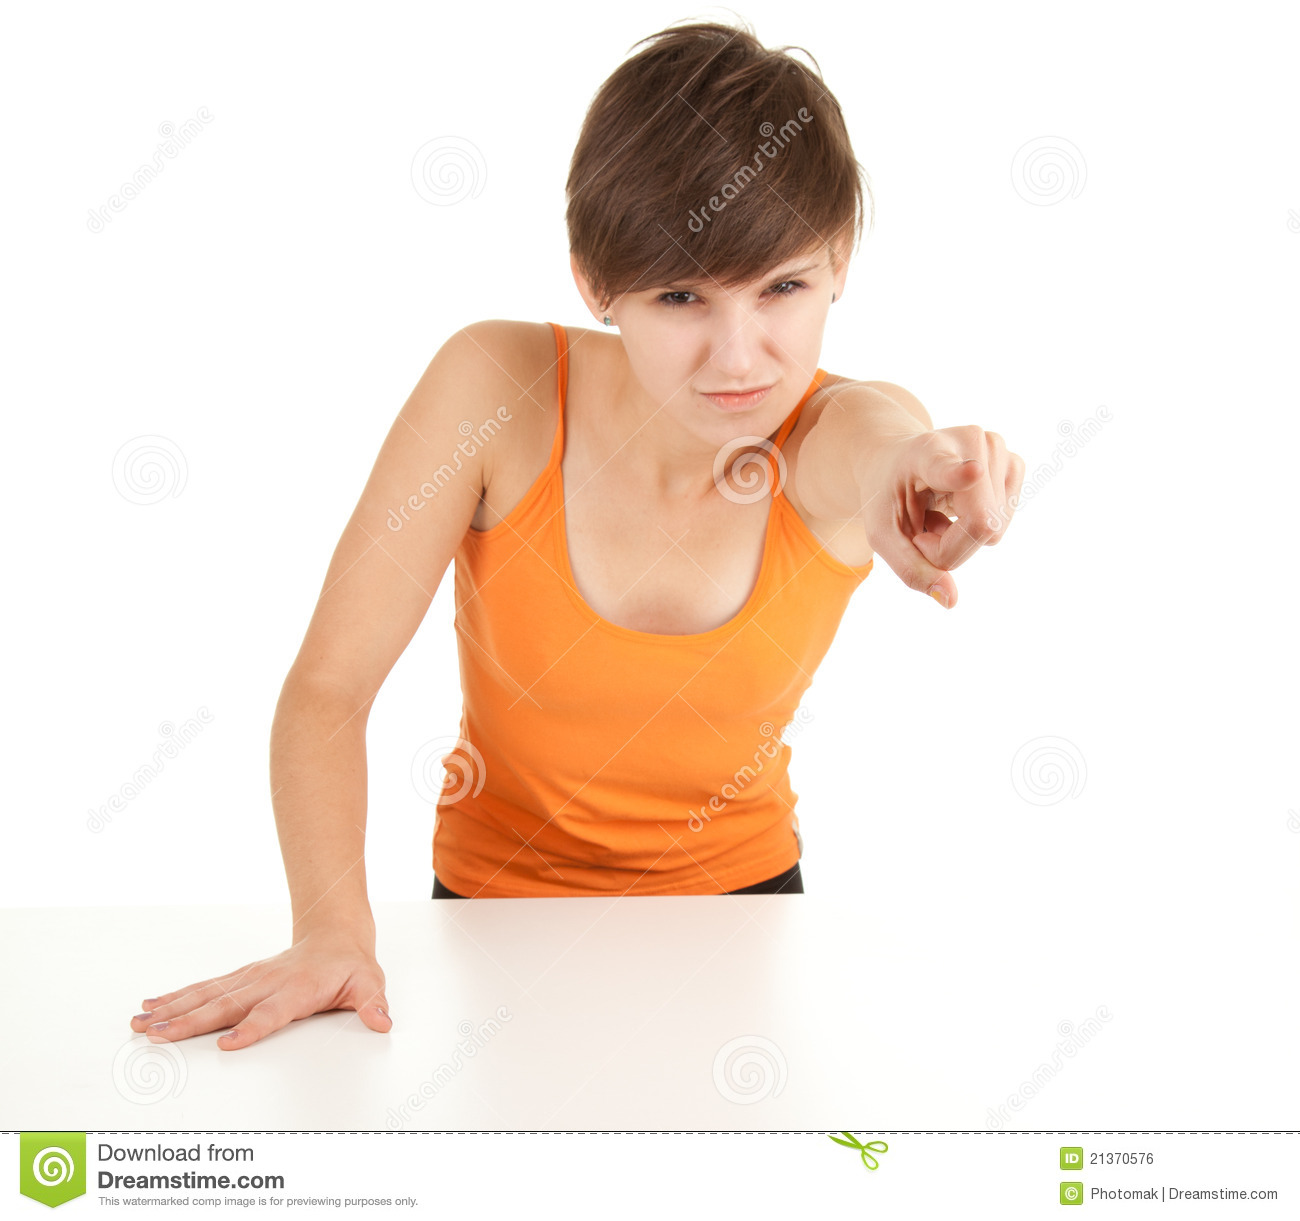 Pointing Angry Girl Royalty Free Stock Image - Image: 21370576